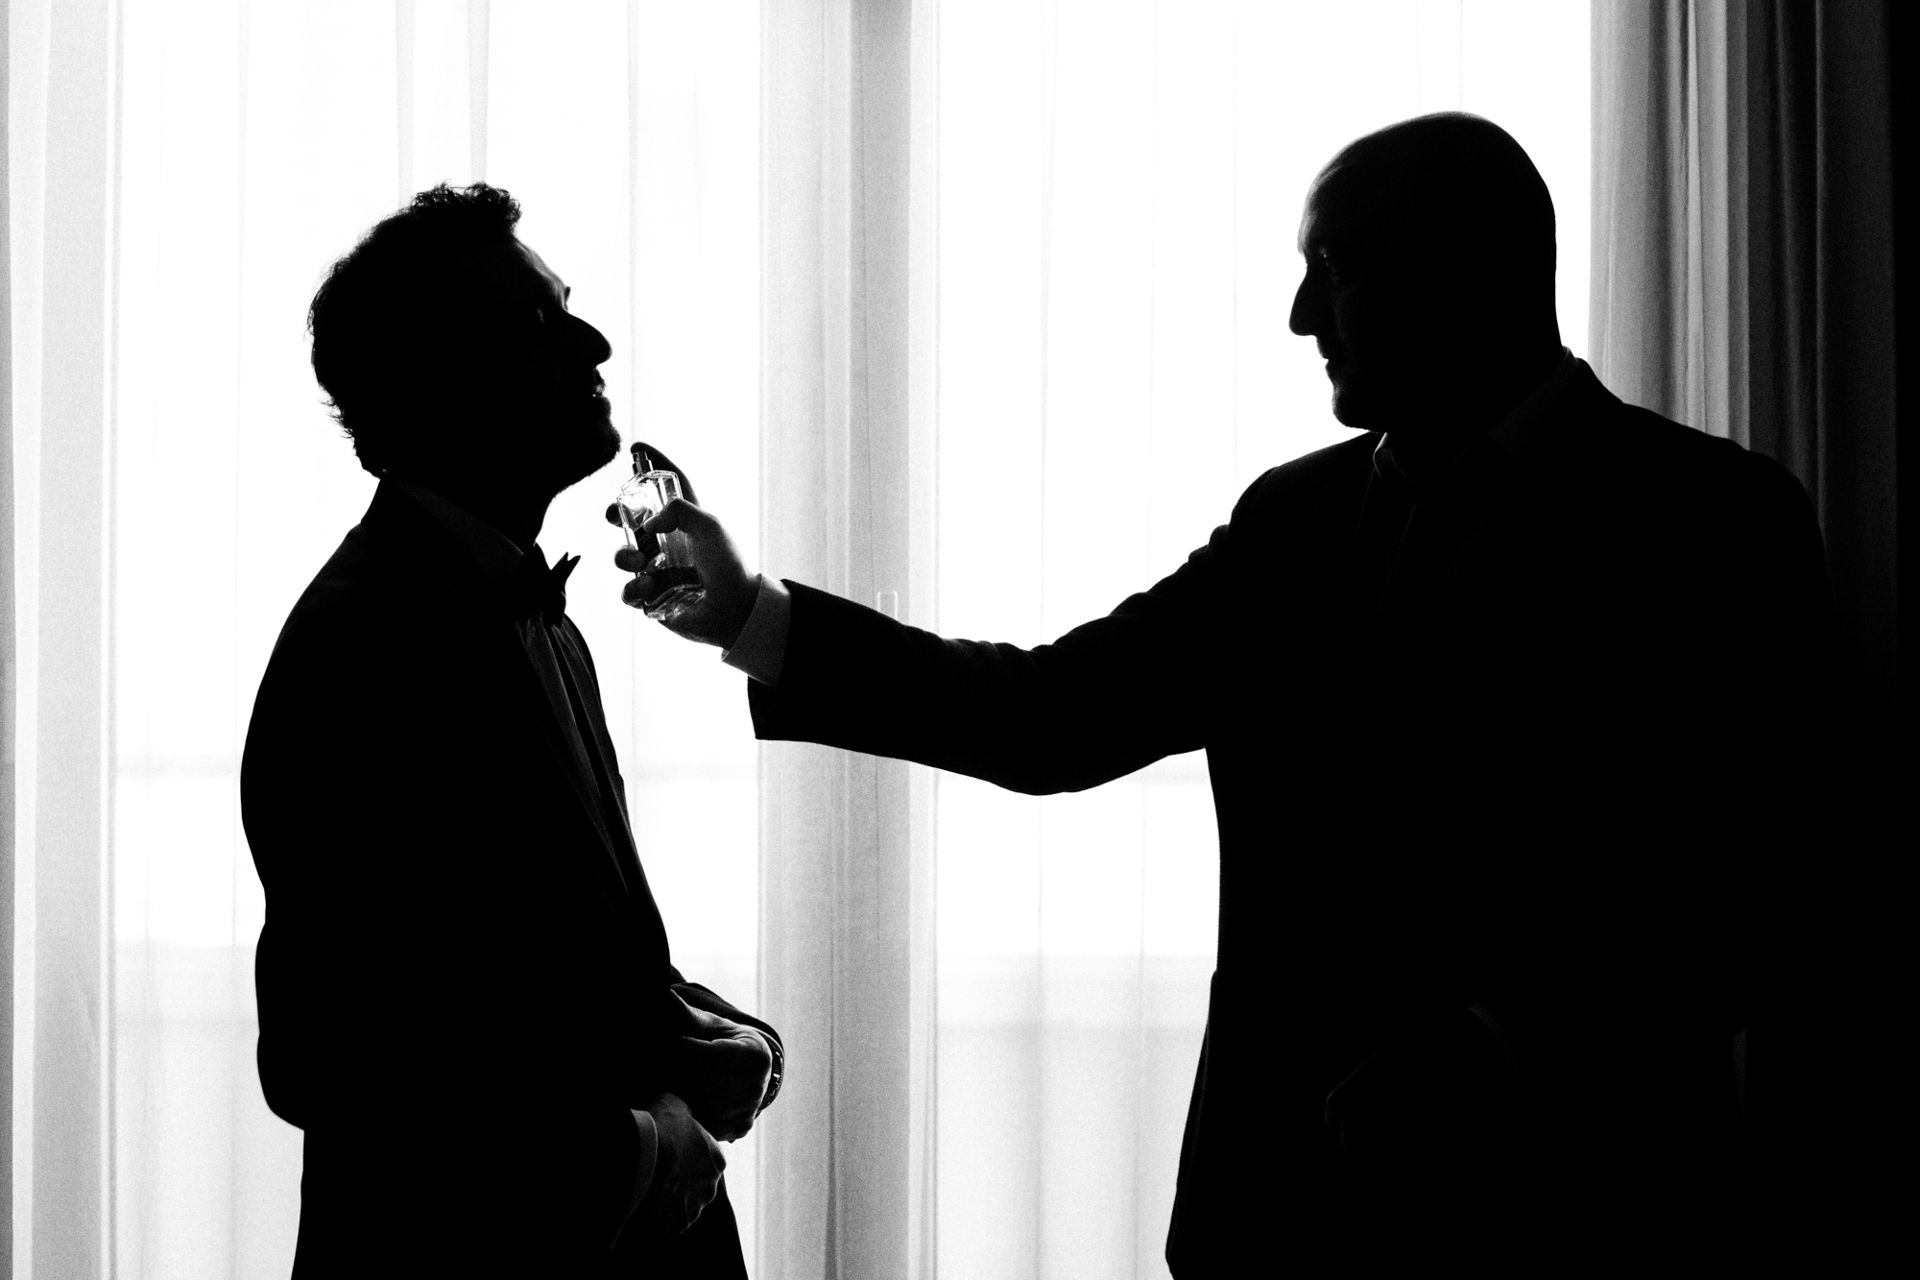 Istanbul Pre-Ceremony Elopement Prep Photo | Standing in front of a bright window, we can see the silhouette of the best man and the groom